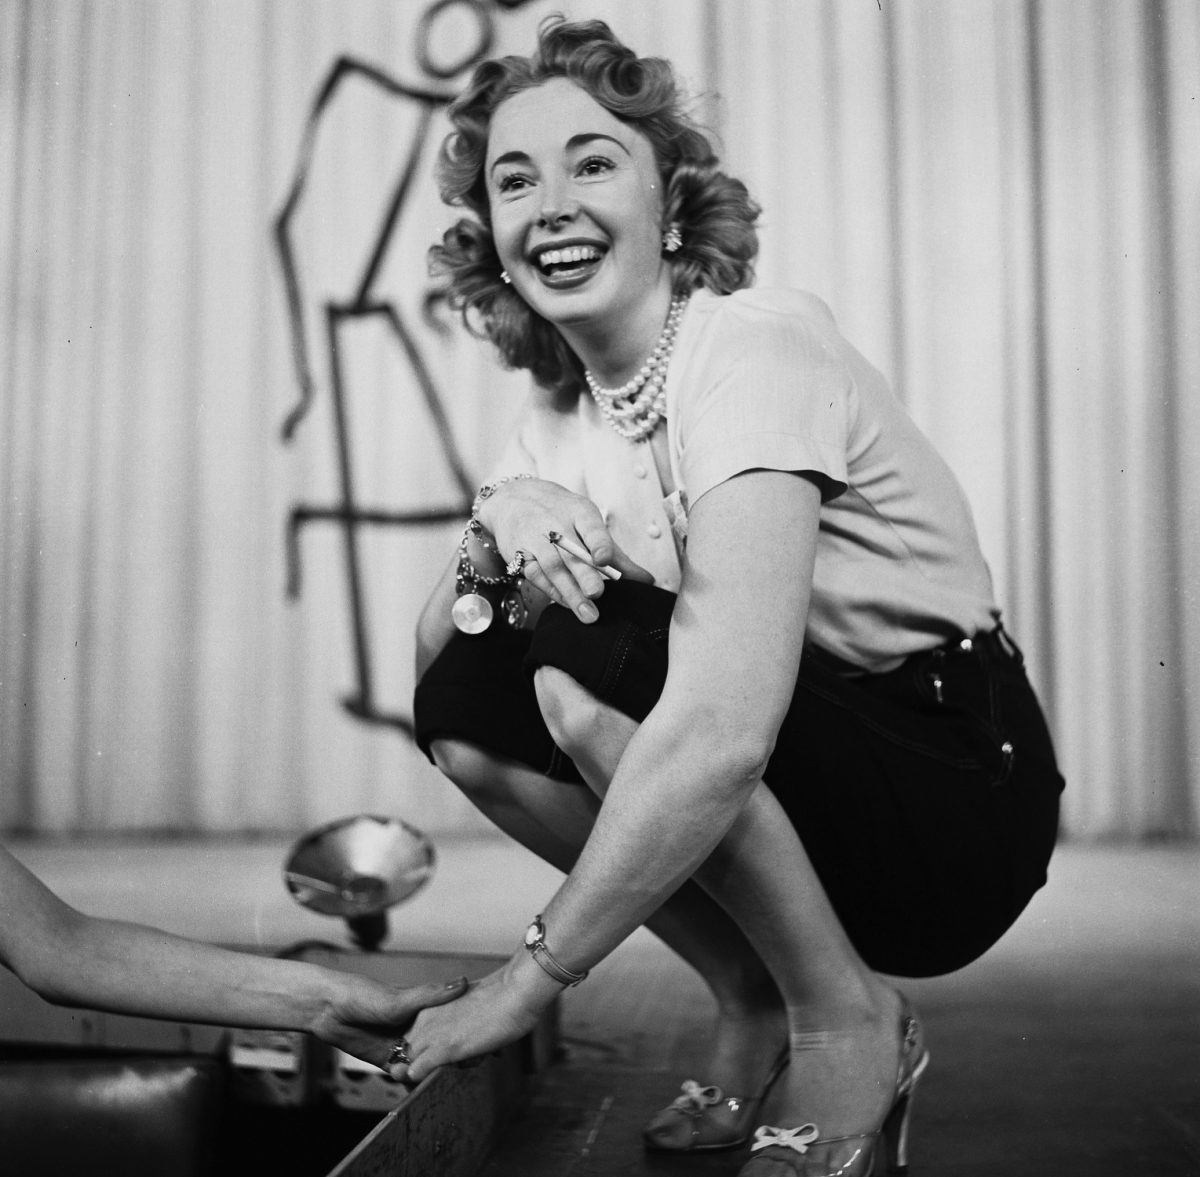 Audrey Meadows appears in 'The Jackie Gleason Show' in the 1950s